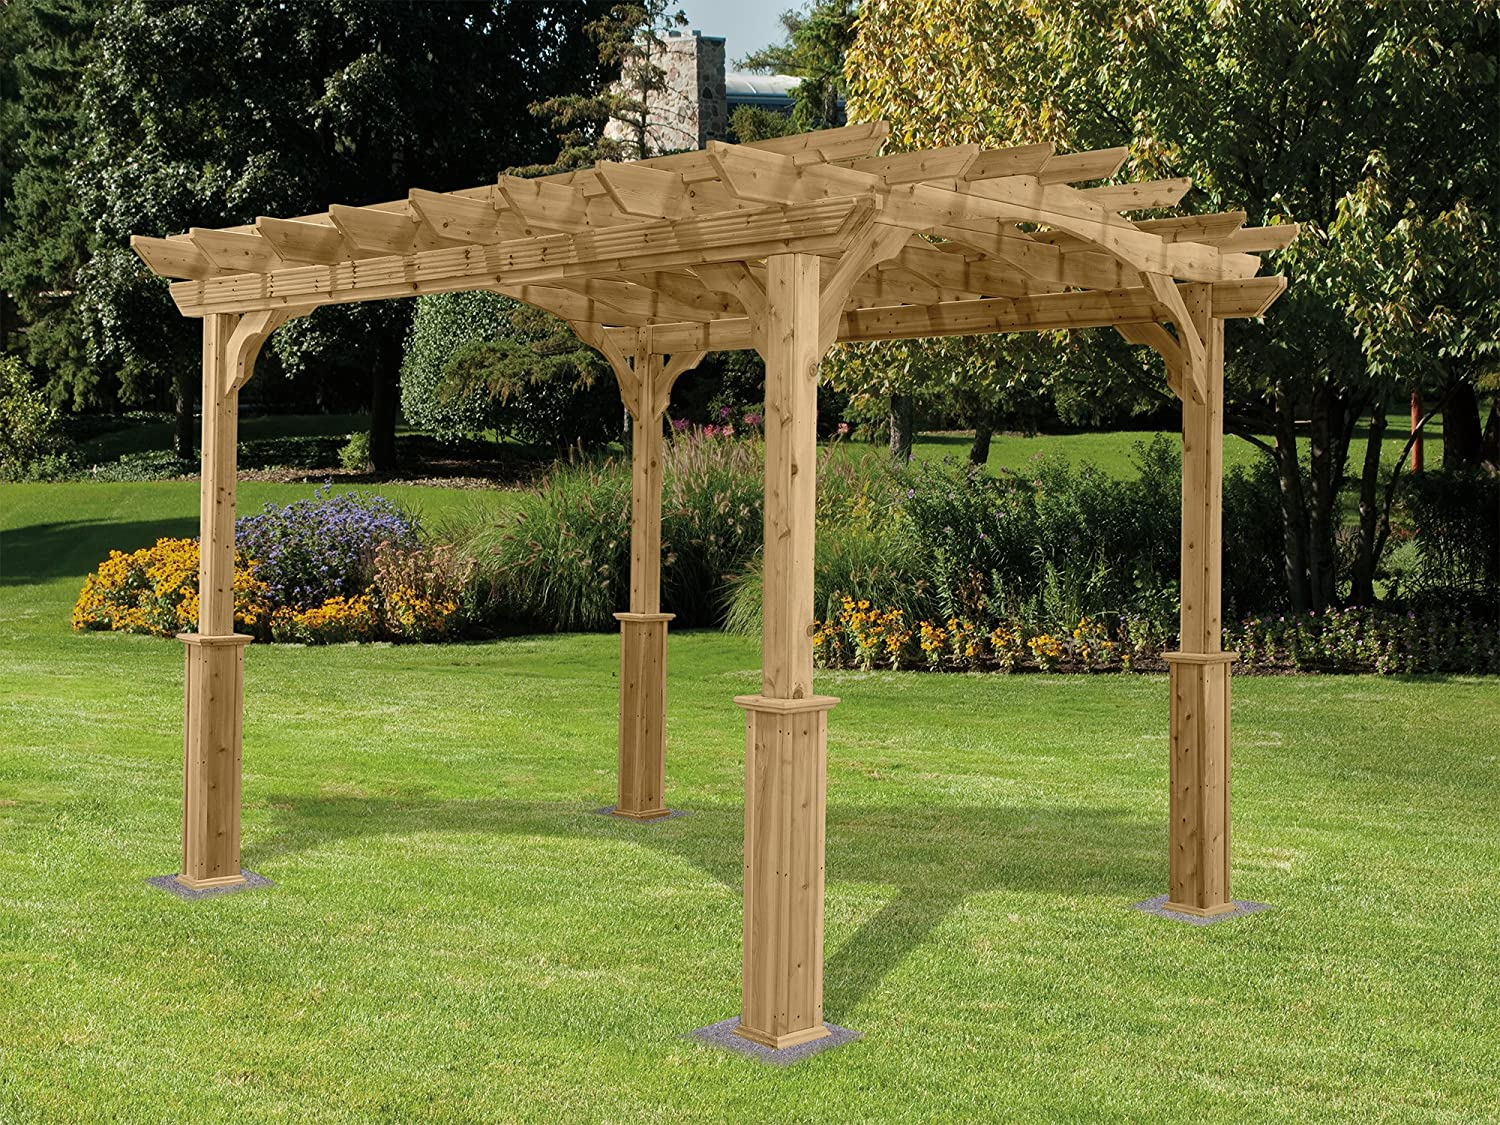 What Are Pergolas Made Of?